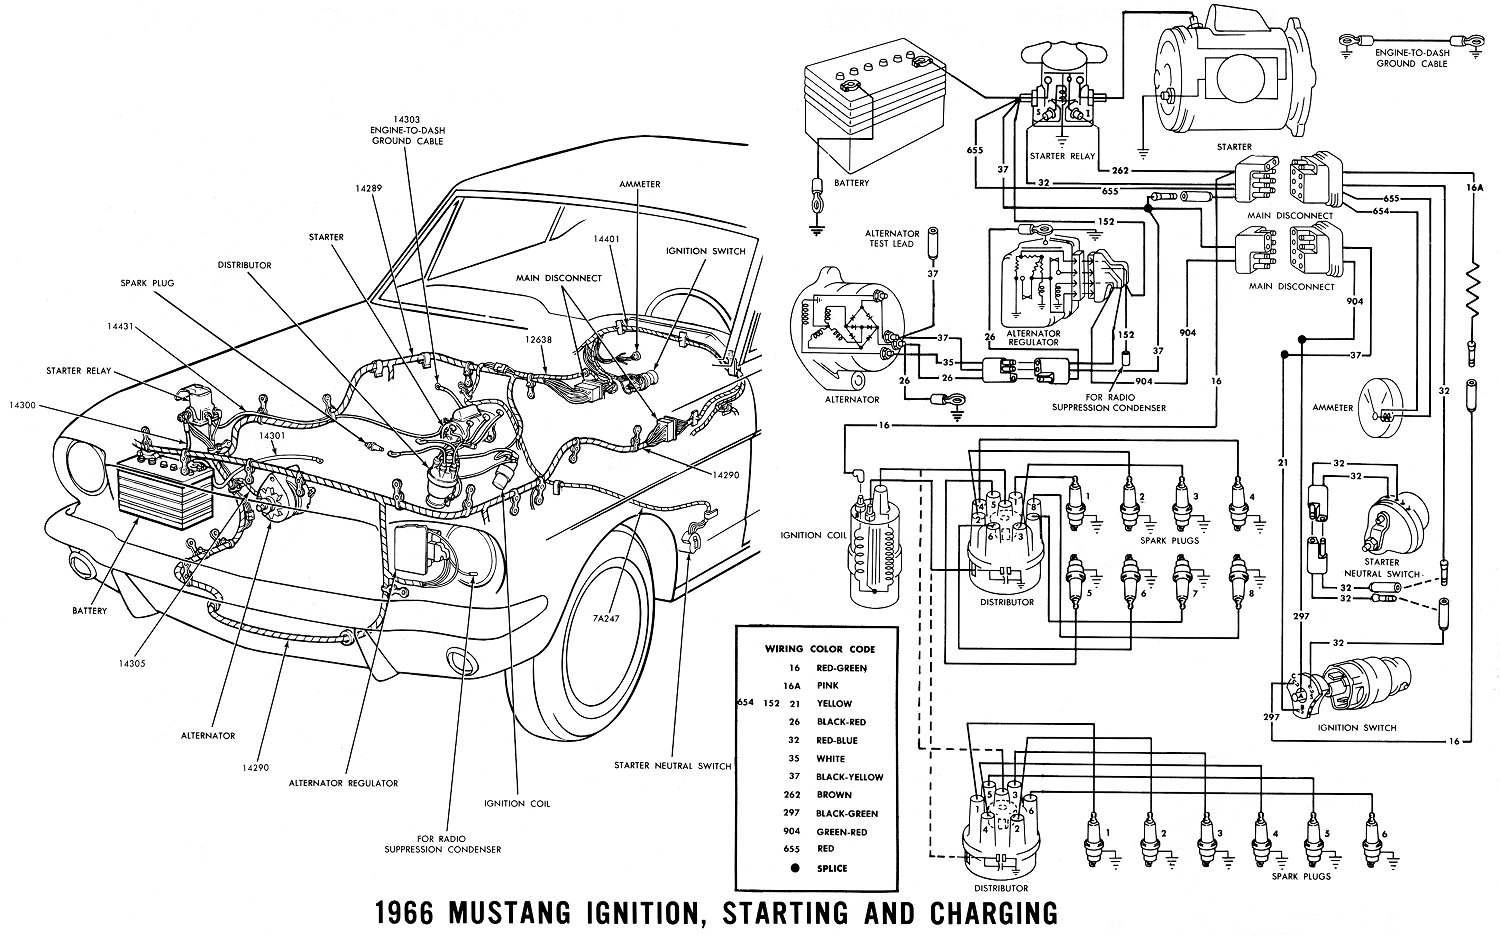 Ford Mustang Wiring Diagram Todays Fuel Pump Harness 1966 Diagrams Average Joe Restoration Ignition